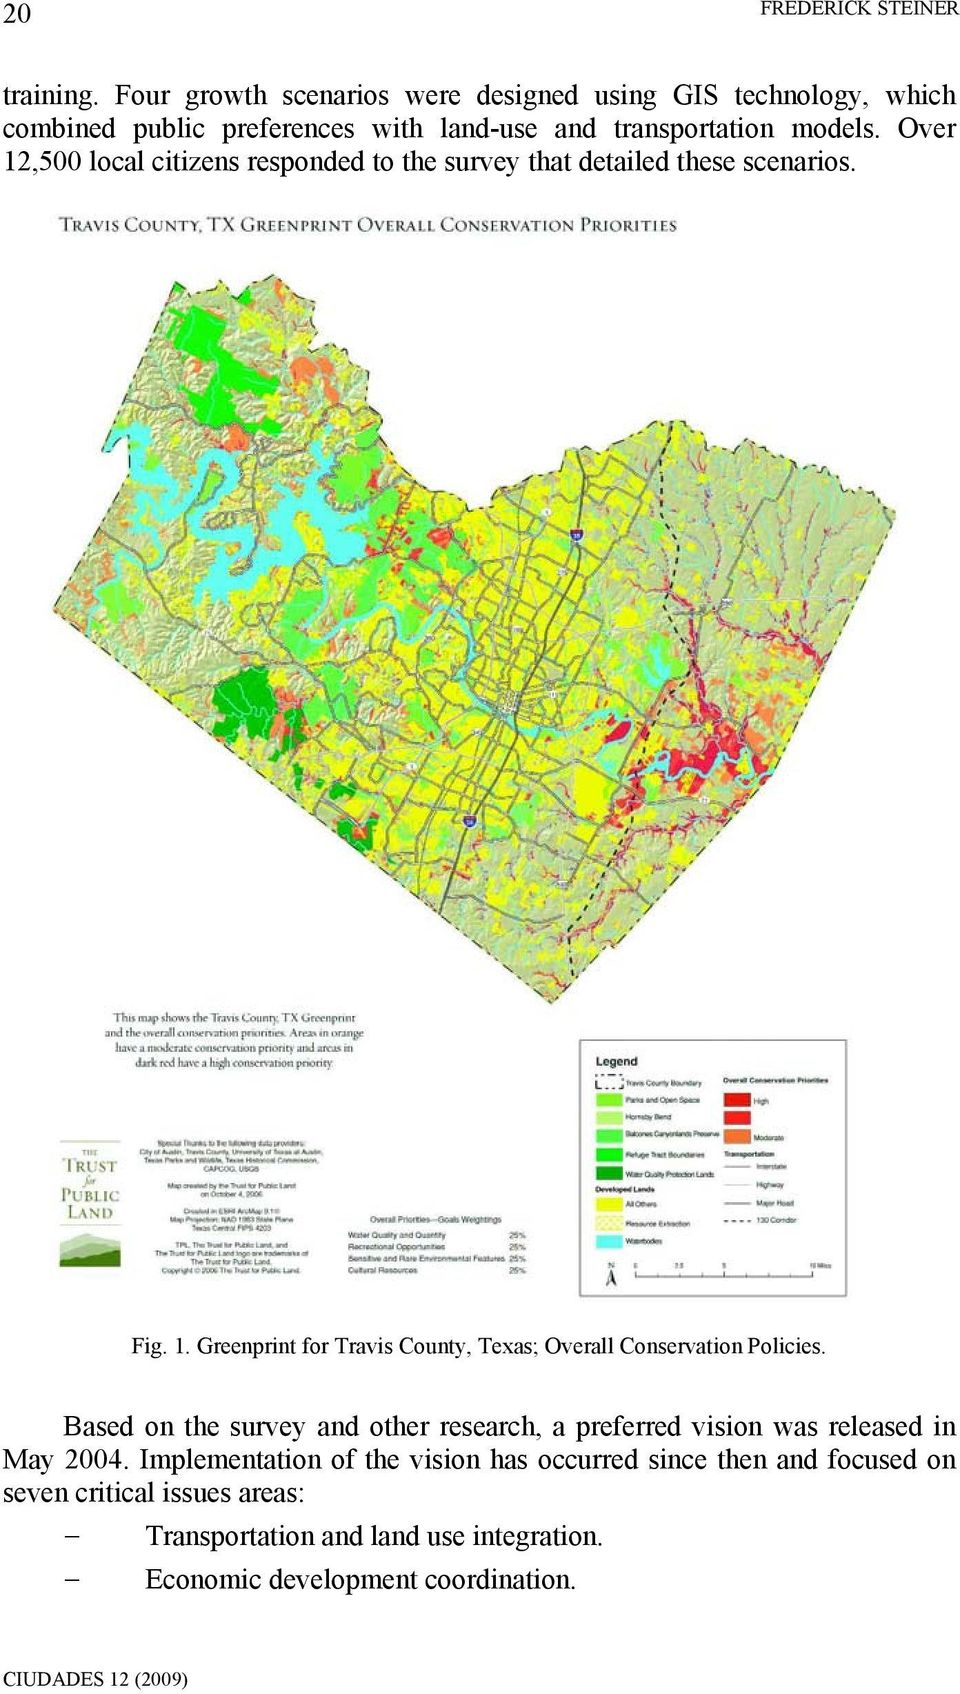 Over 12,500 local citizens responded to the survey that detailed these scenarios. Fig. 1. Greenprint for Travis County, Texas; Overall Conservation Policies.